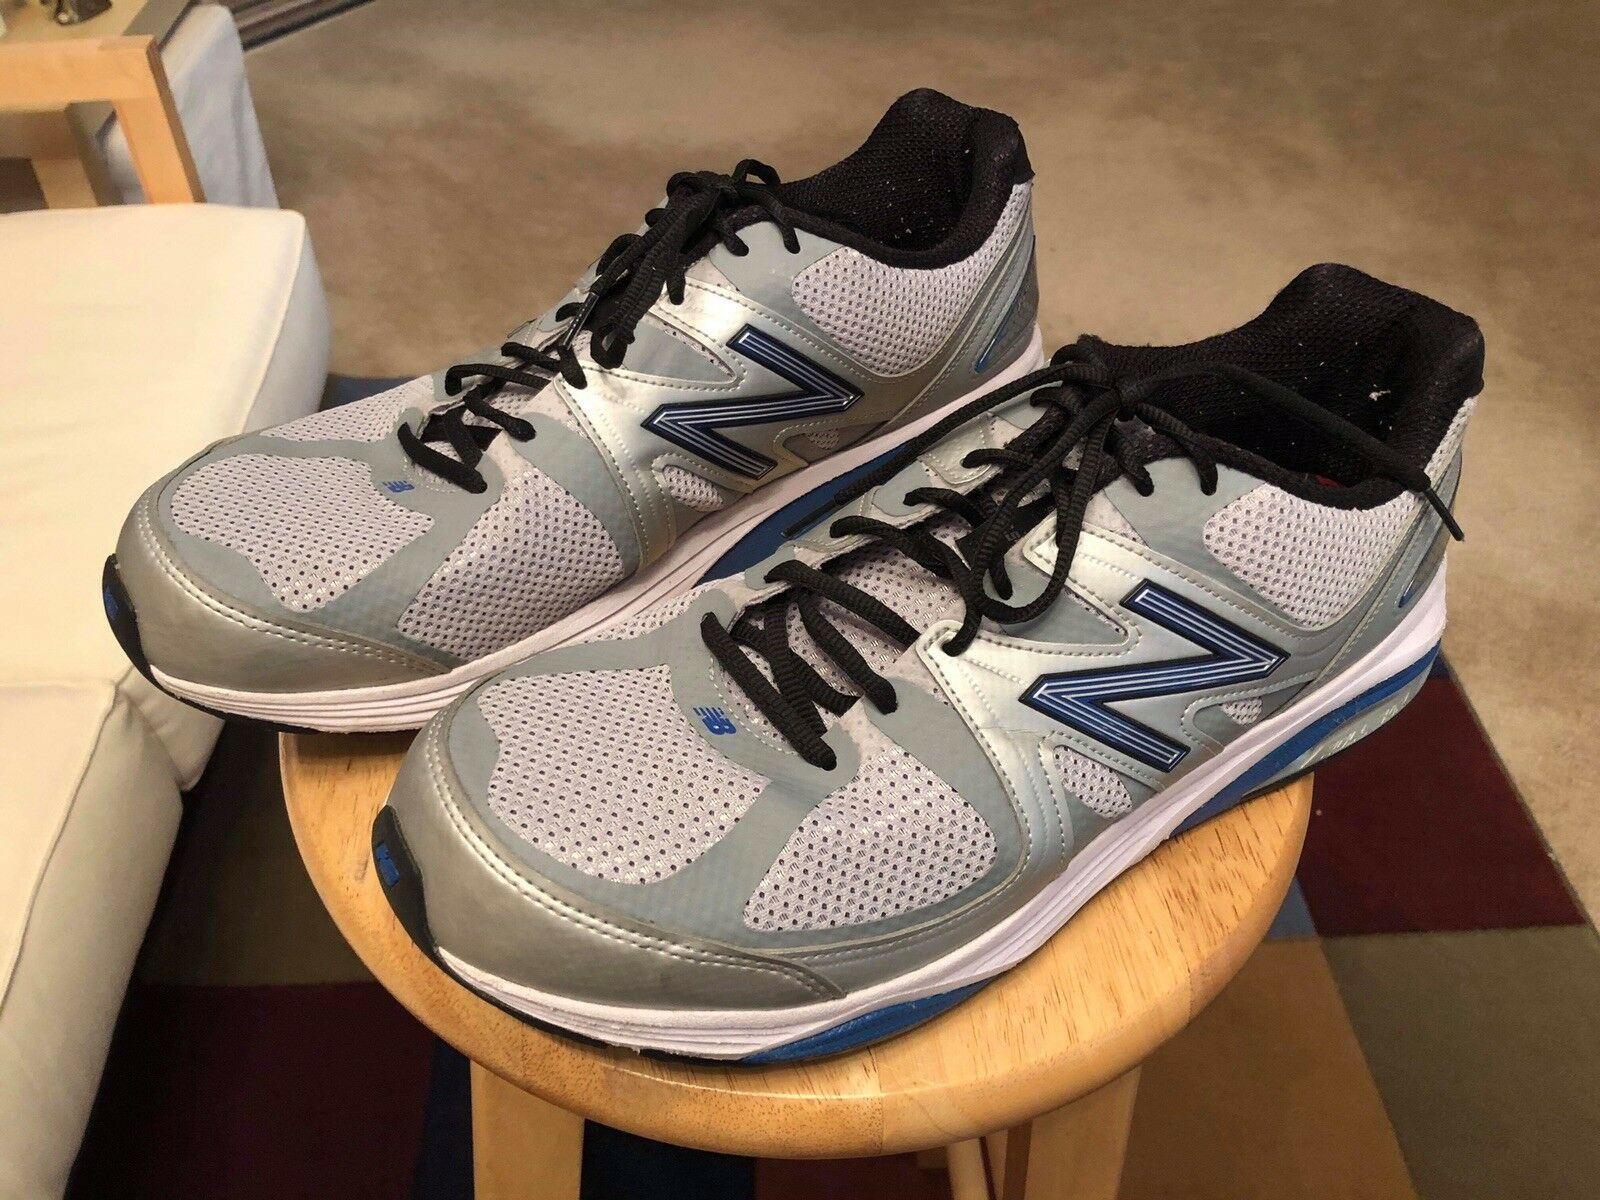 New Balance 1540V2 Silver bluee Men's US12.5 2E USA Athletic Sneakers shoes